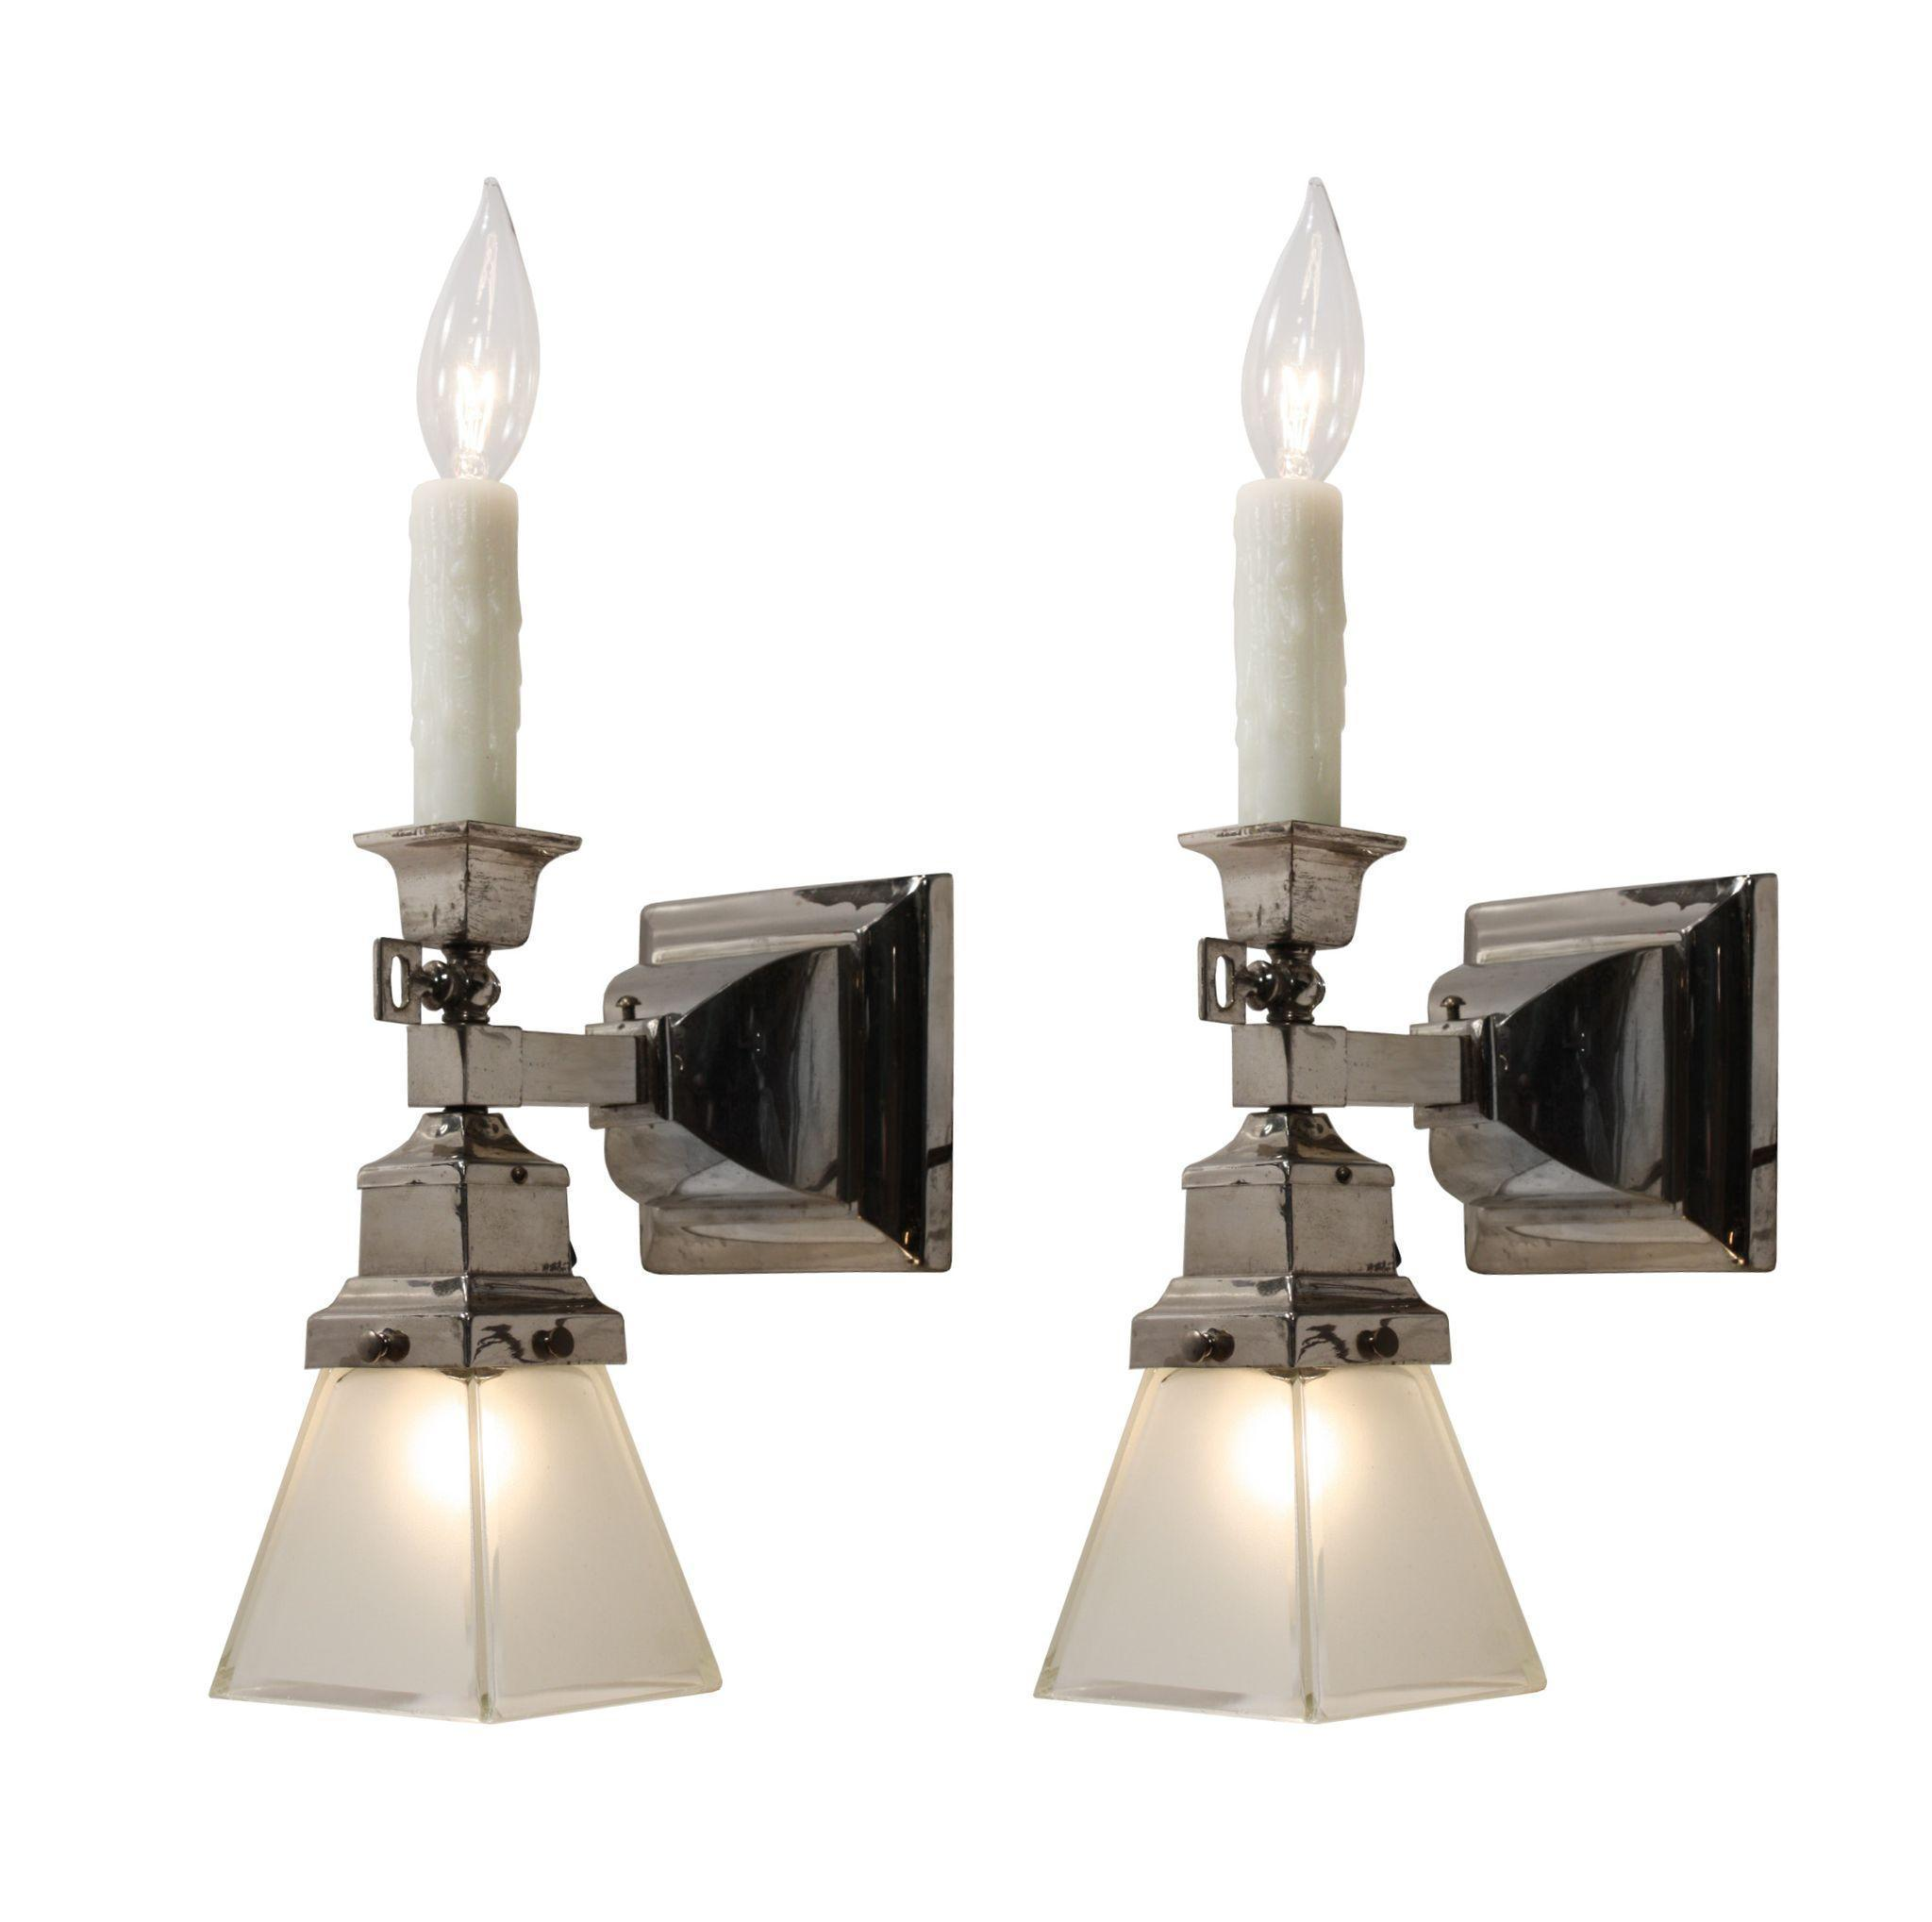 Superb Antique Gas & Electric Sconce Pair with Glass Shades, 19th Century